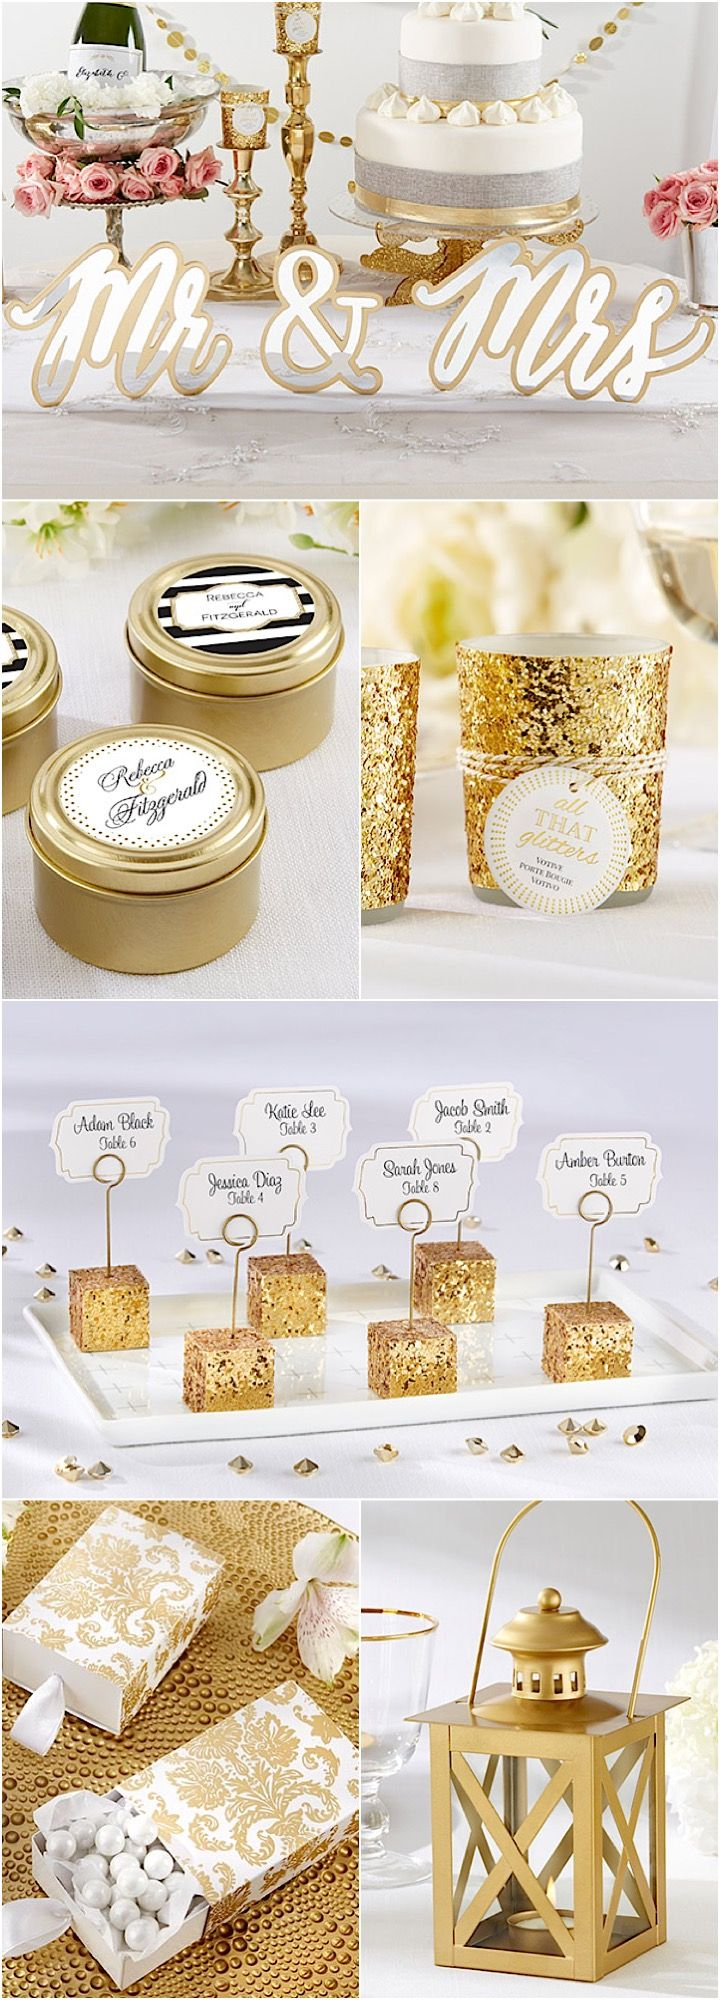 best bridal shower gifts for guests%0A Kate Aspen Giveaway  Win      For Your Wedding  Bridal Shower FavorsWedding